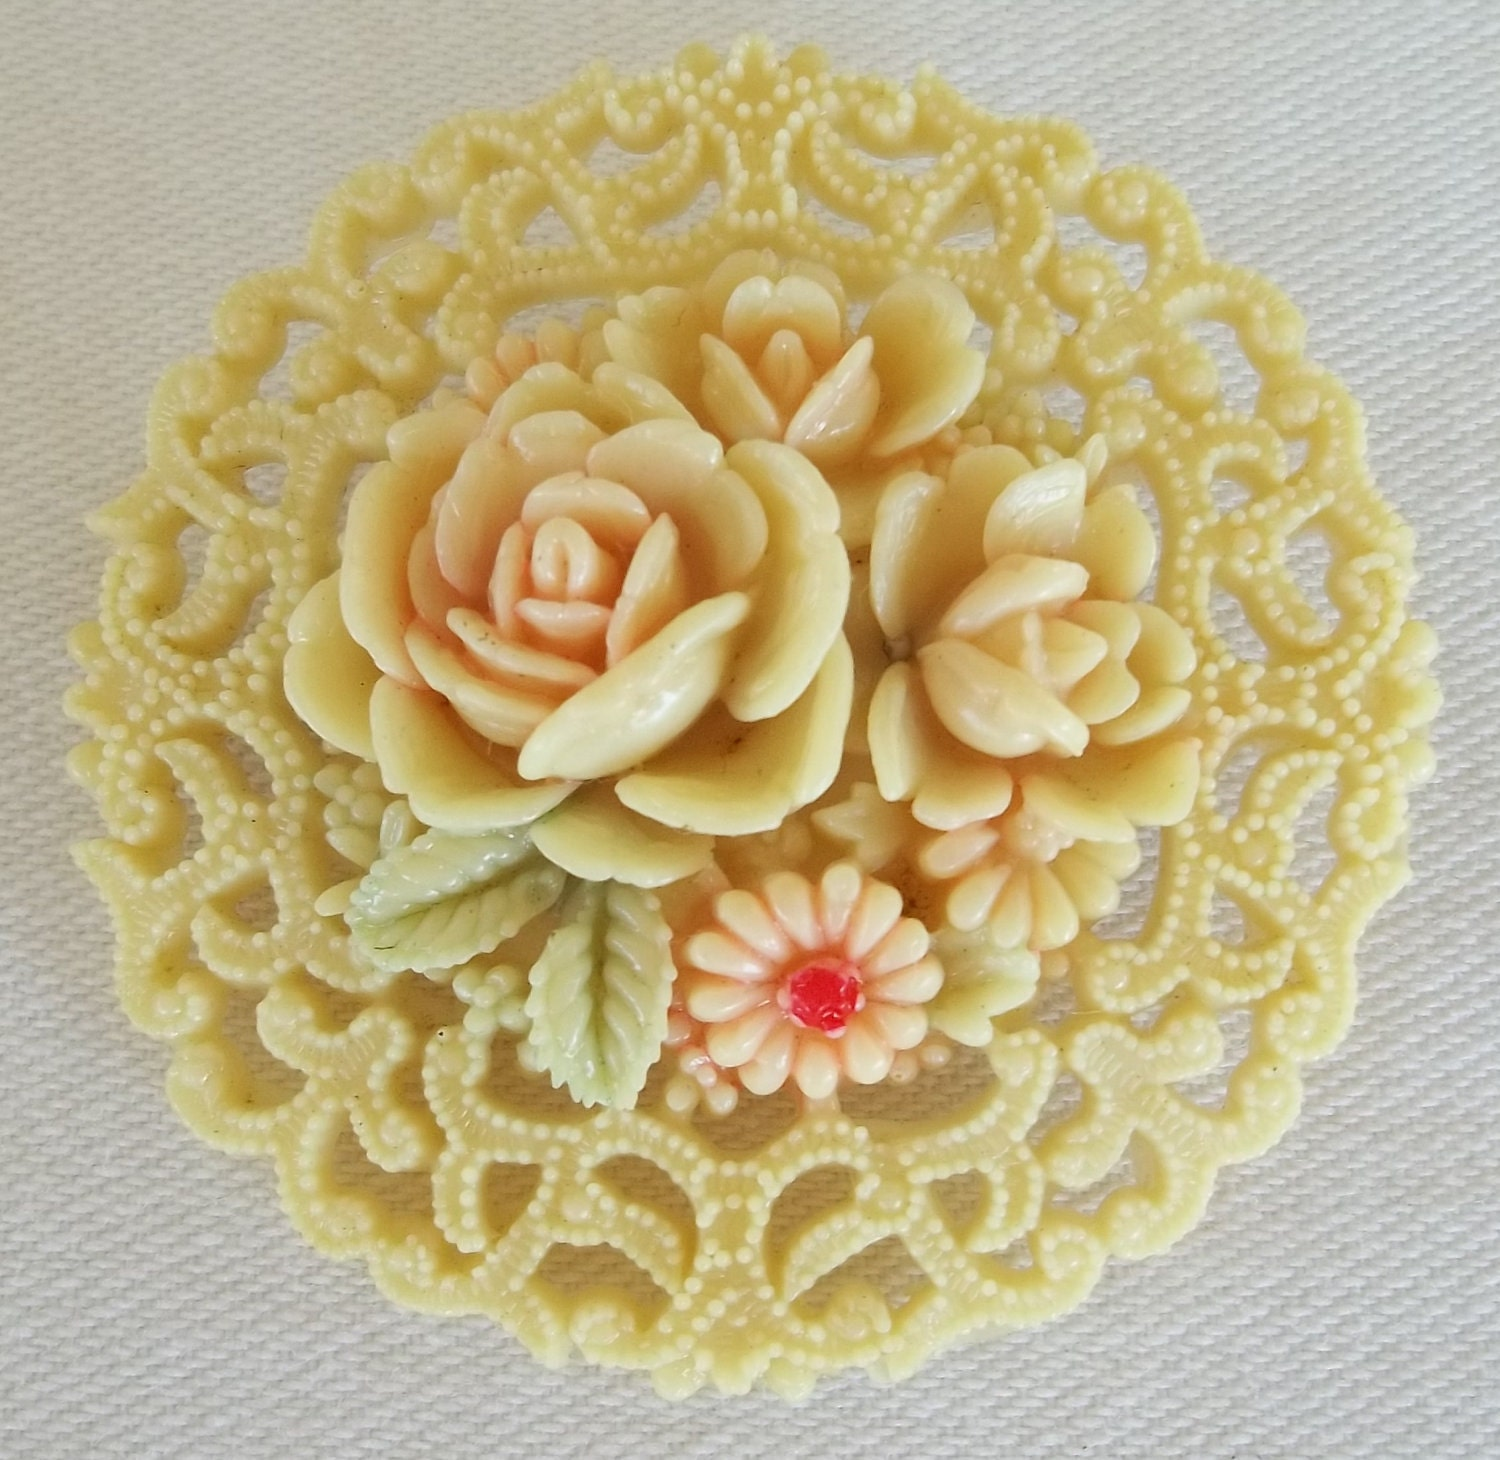 Vintage 1940's Carved Celluloid Pin Brooch Occupied Japan Roses Daisy Flowers - FarisMandyEtsy